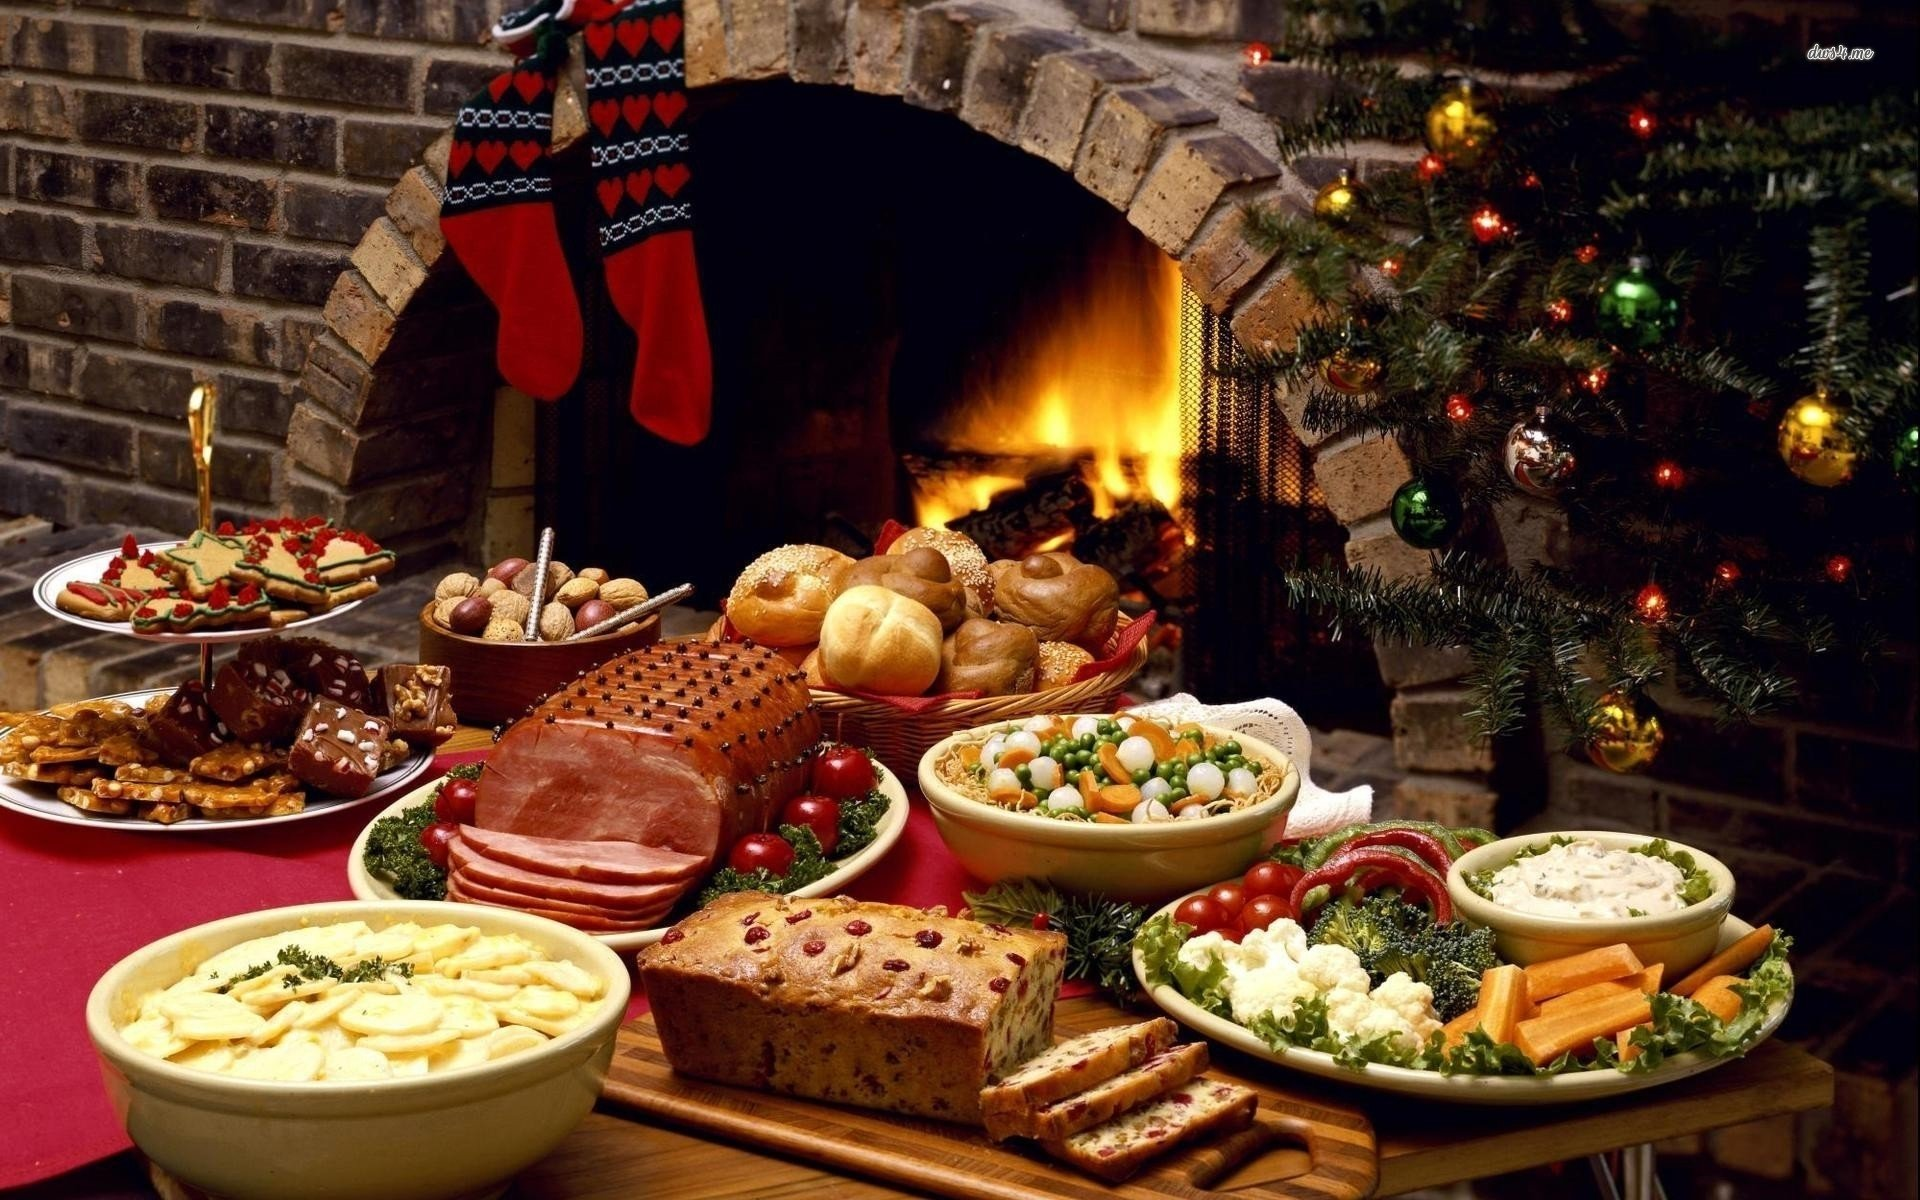 10 Stunning Christmas Dinner Ideas For A Crowd christmas dinner ideas for a crowd nontraditional menu 2016 2017 2020